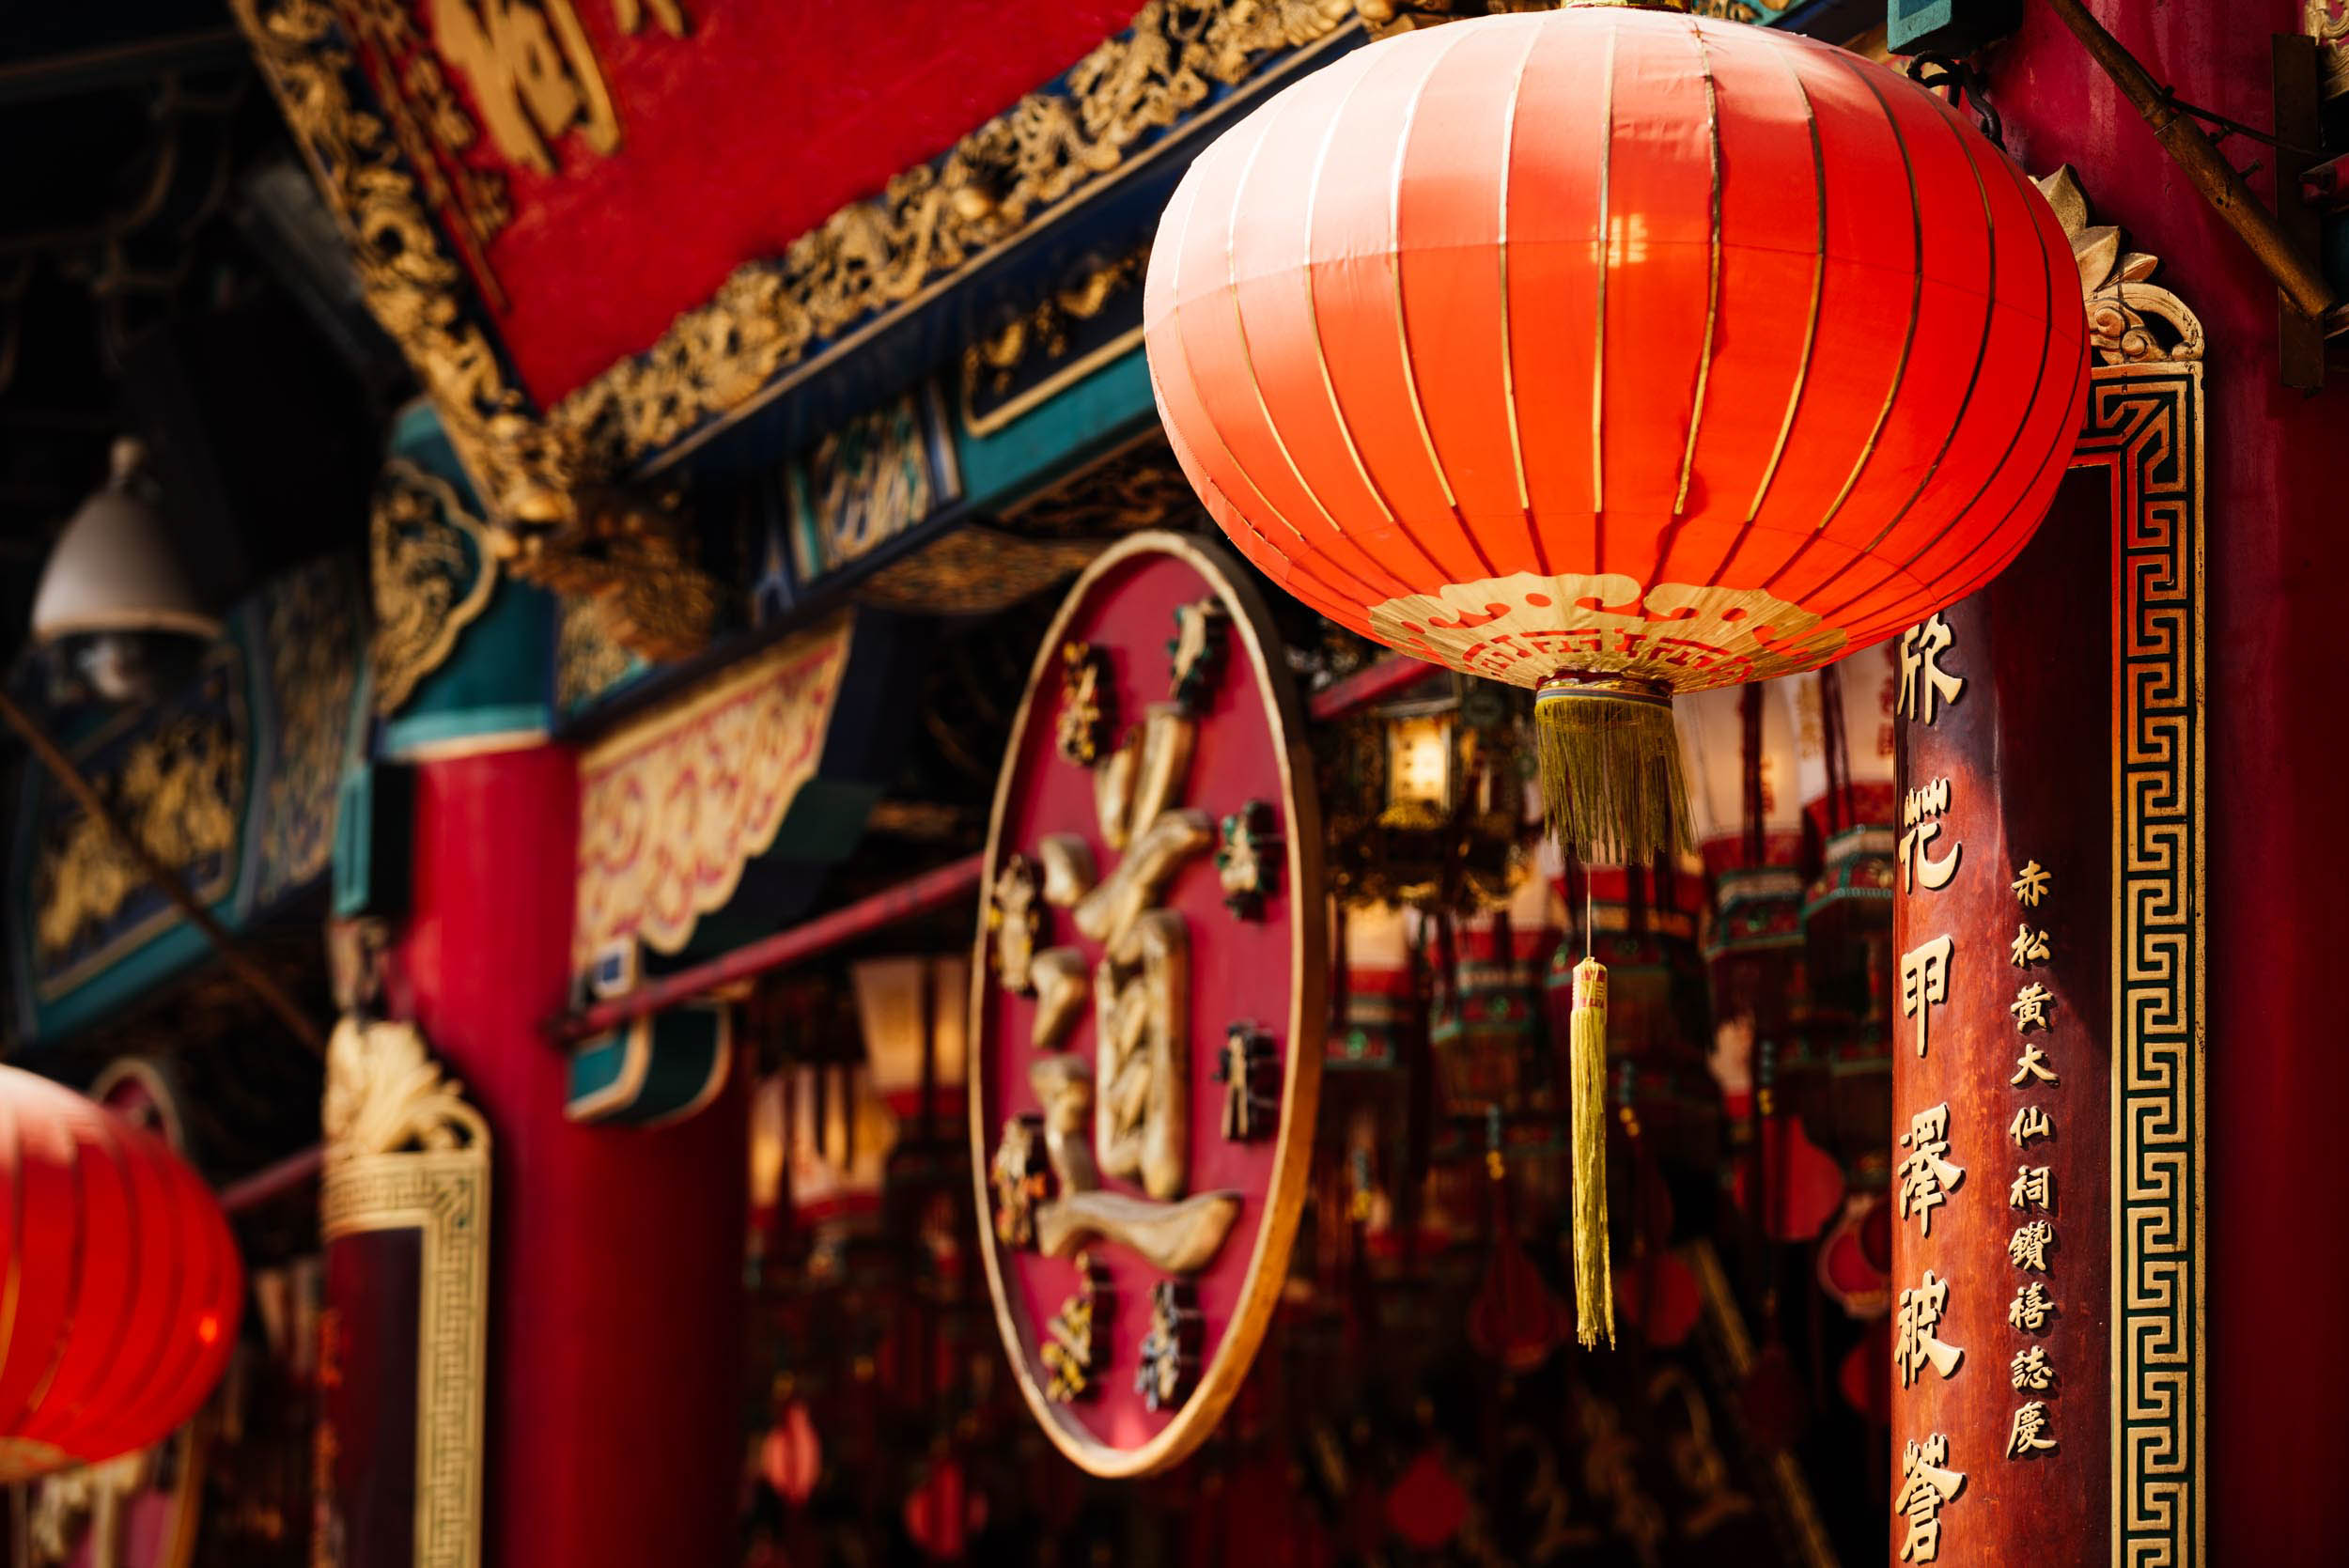 wong-tai-sin-taoism-religion-tradition-temple-kowloon-hong-kong-china